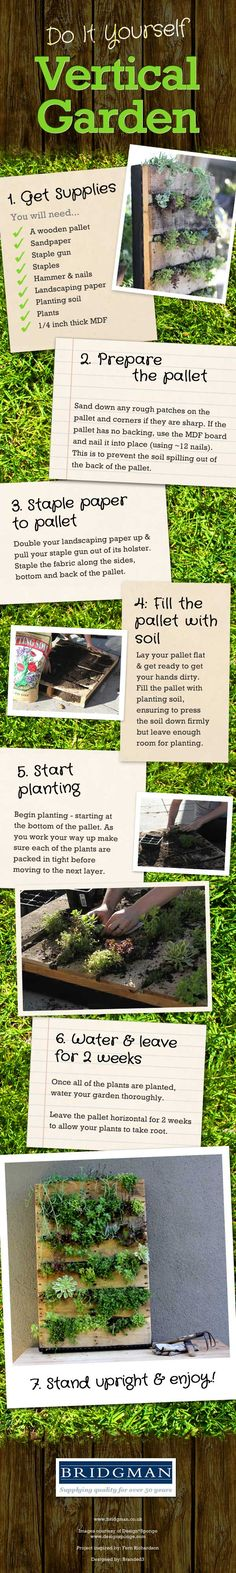 "Lots of folks are interested in vertical gardening  - here's a nice ""how to"" description."